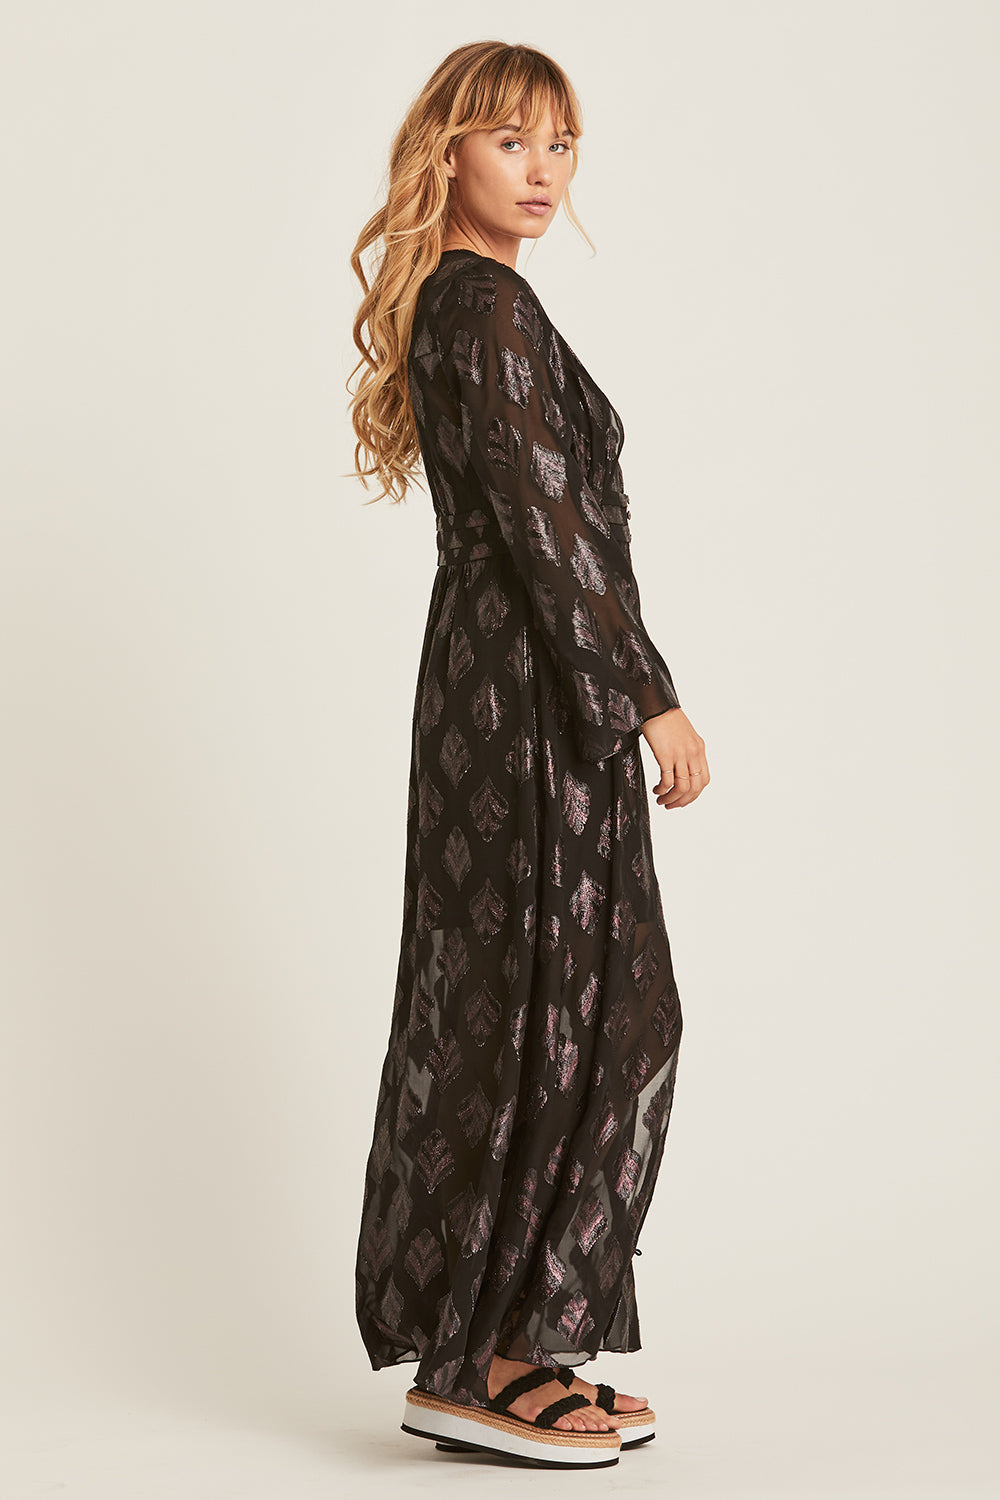 Celeste Maxi Dress in Eclipse